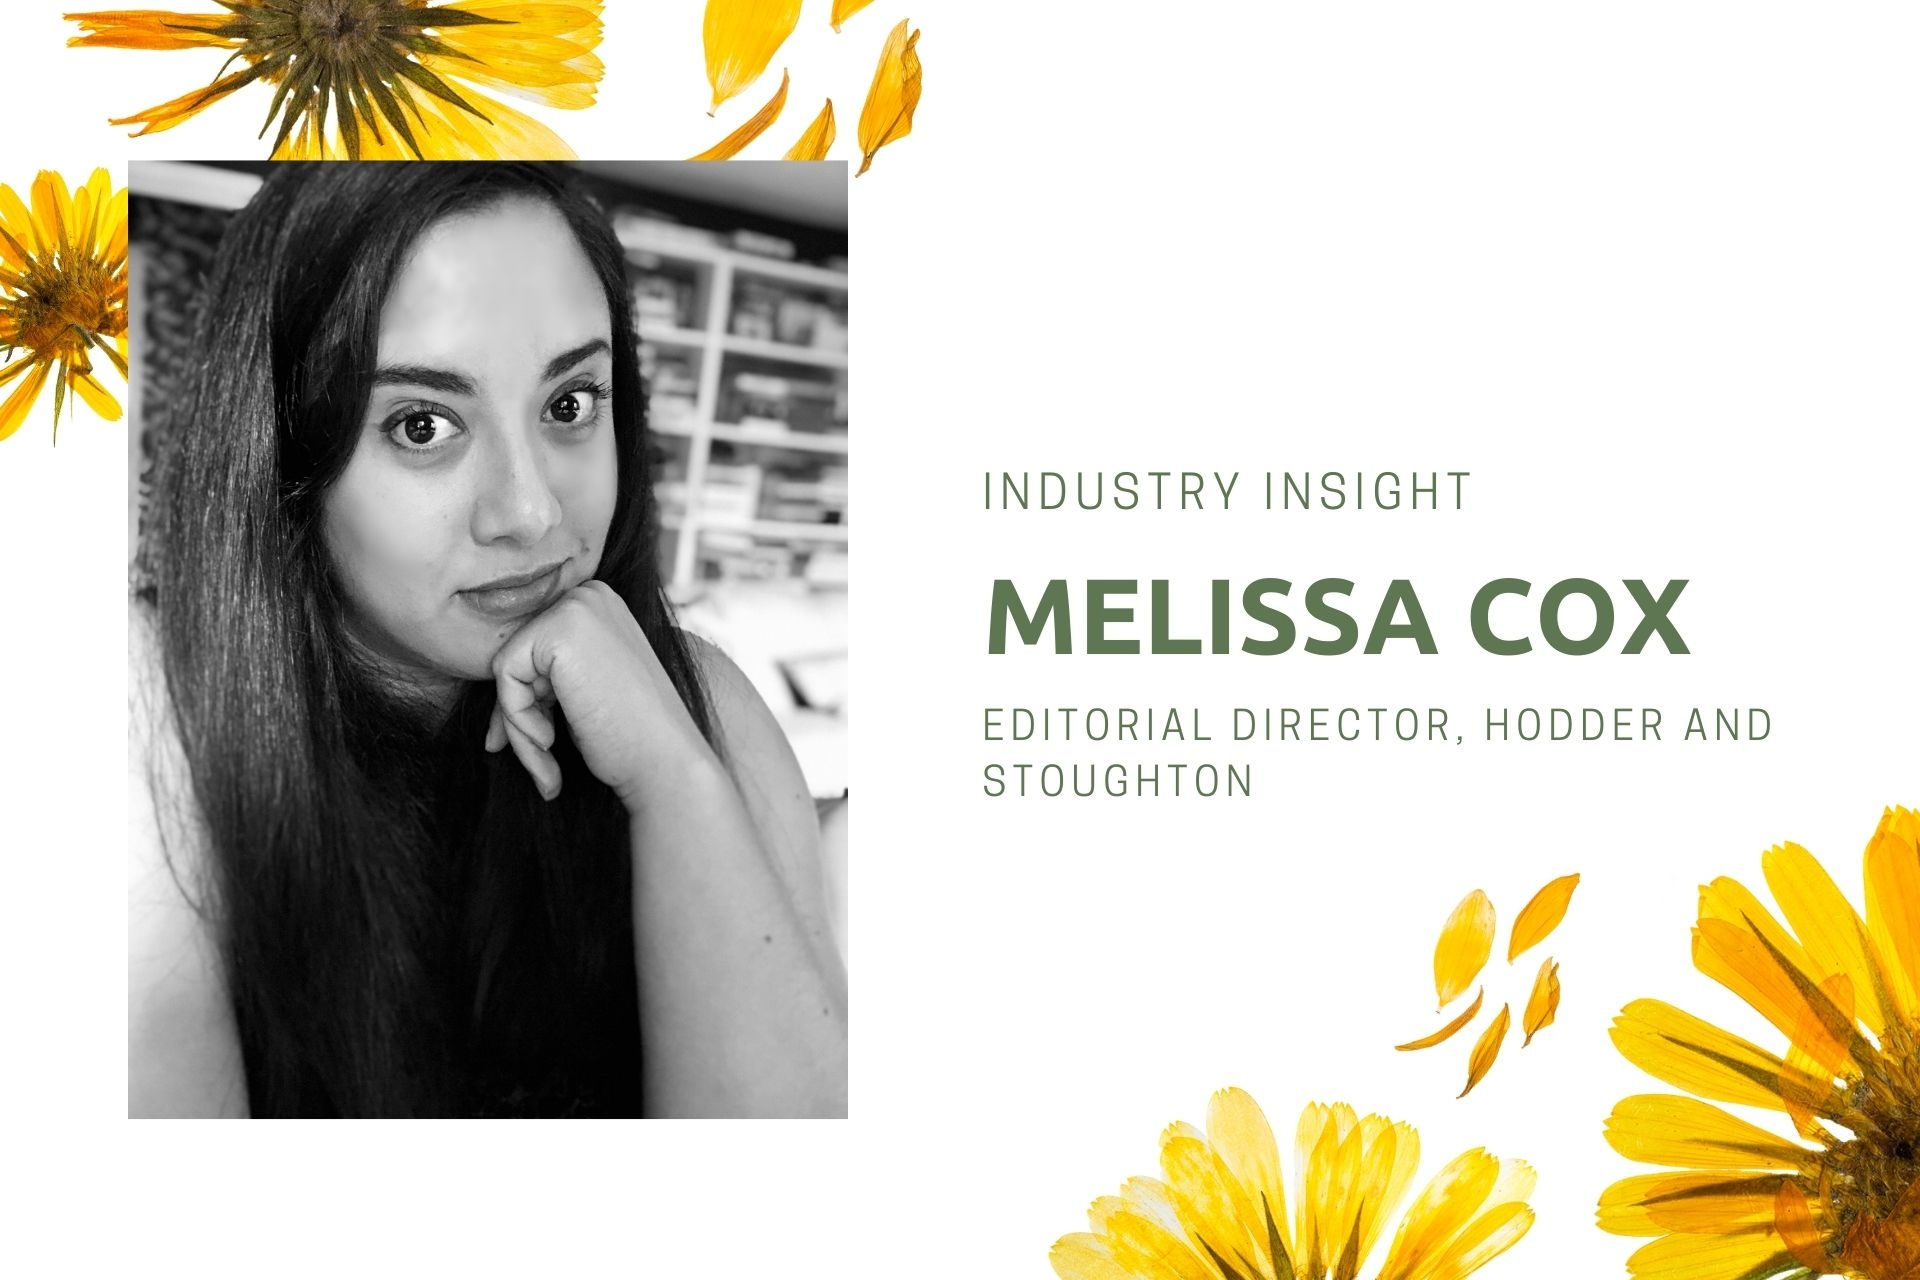 Industry Insight: Q&A with Melissa Cox, Editorial Director at Hodder and Stoughton